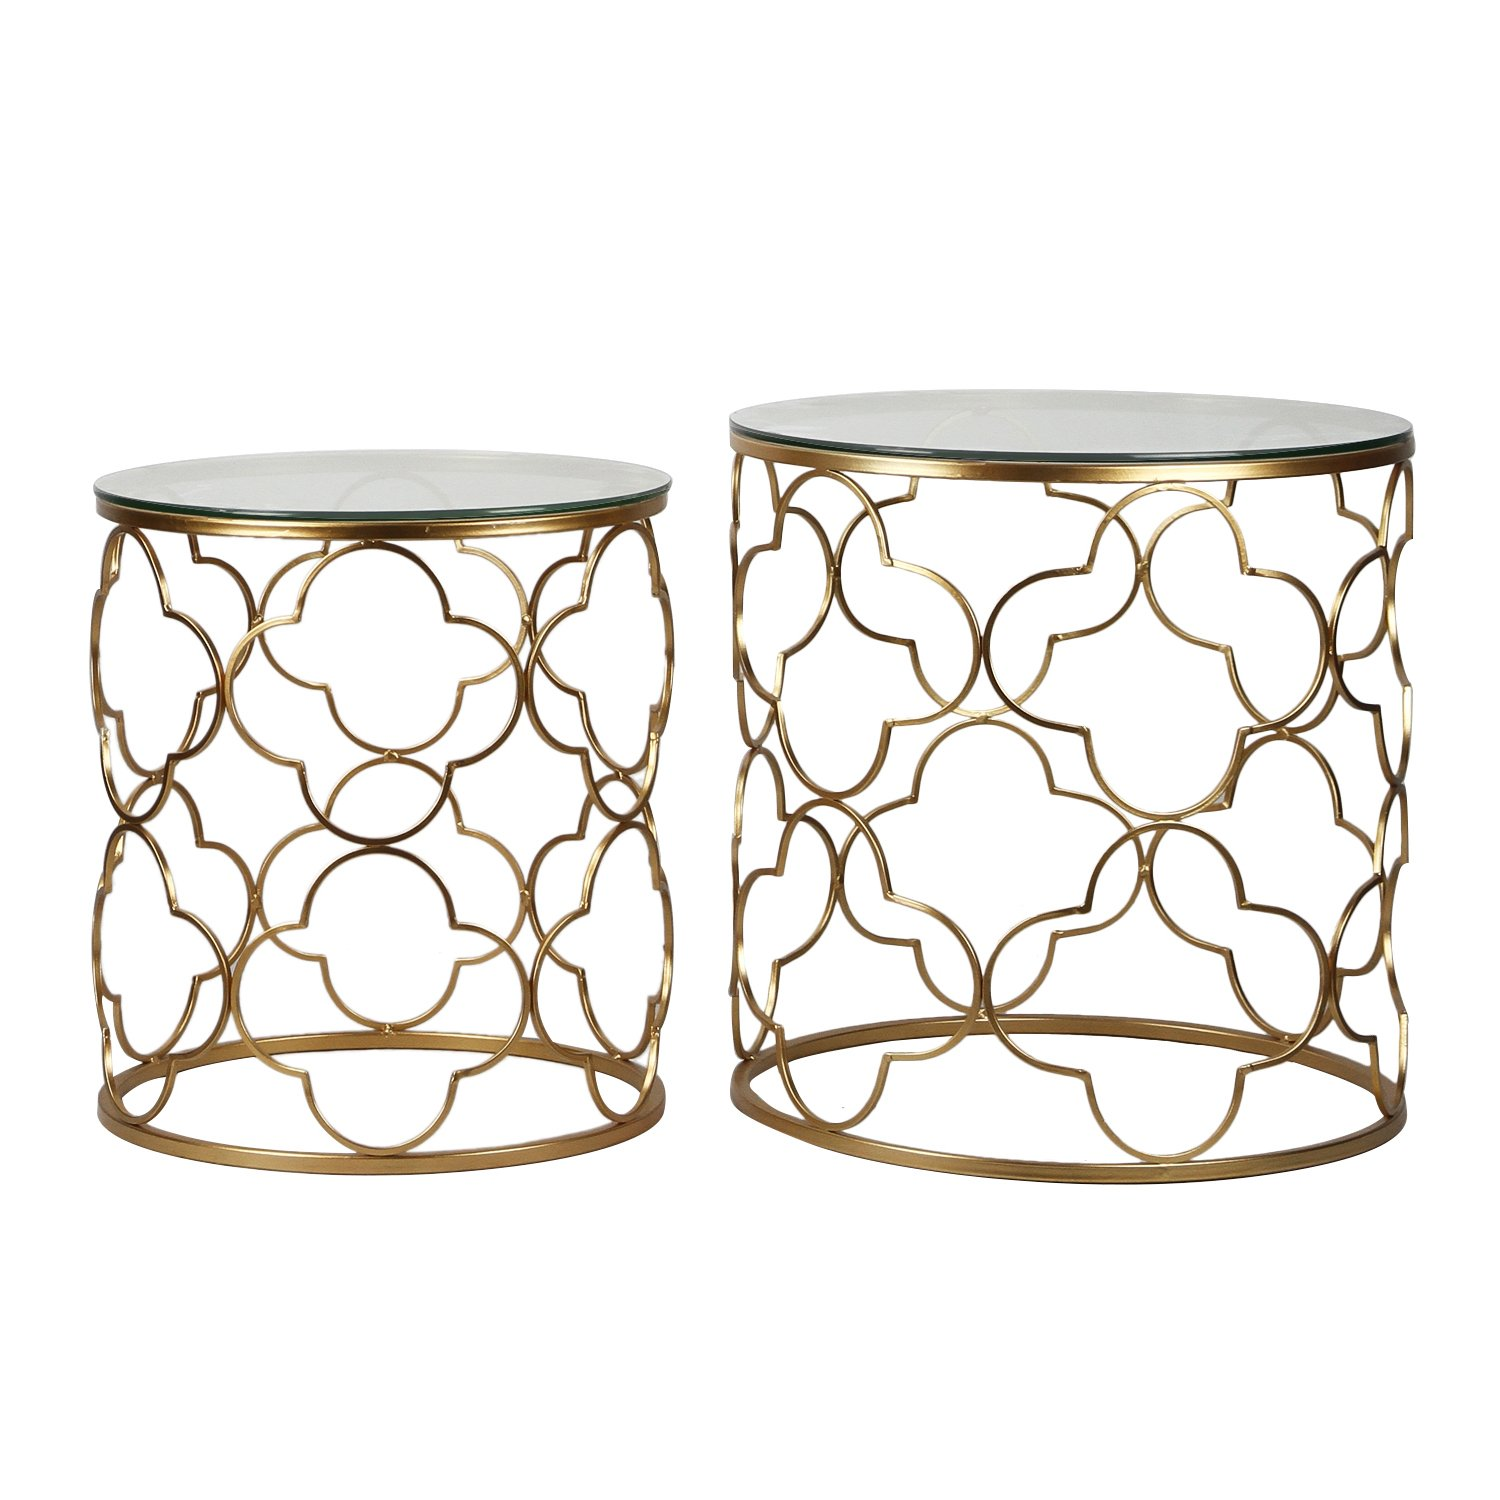 joveco gold end table with glass top decorative quatrefoil accent metal framework best for living room side patio garden drum stool cover small dark wood console wall white round